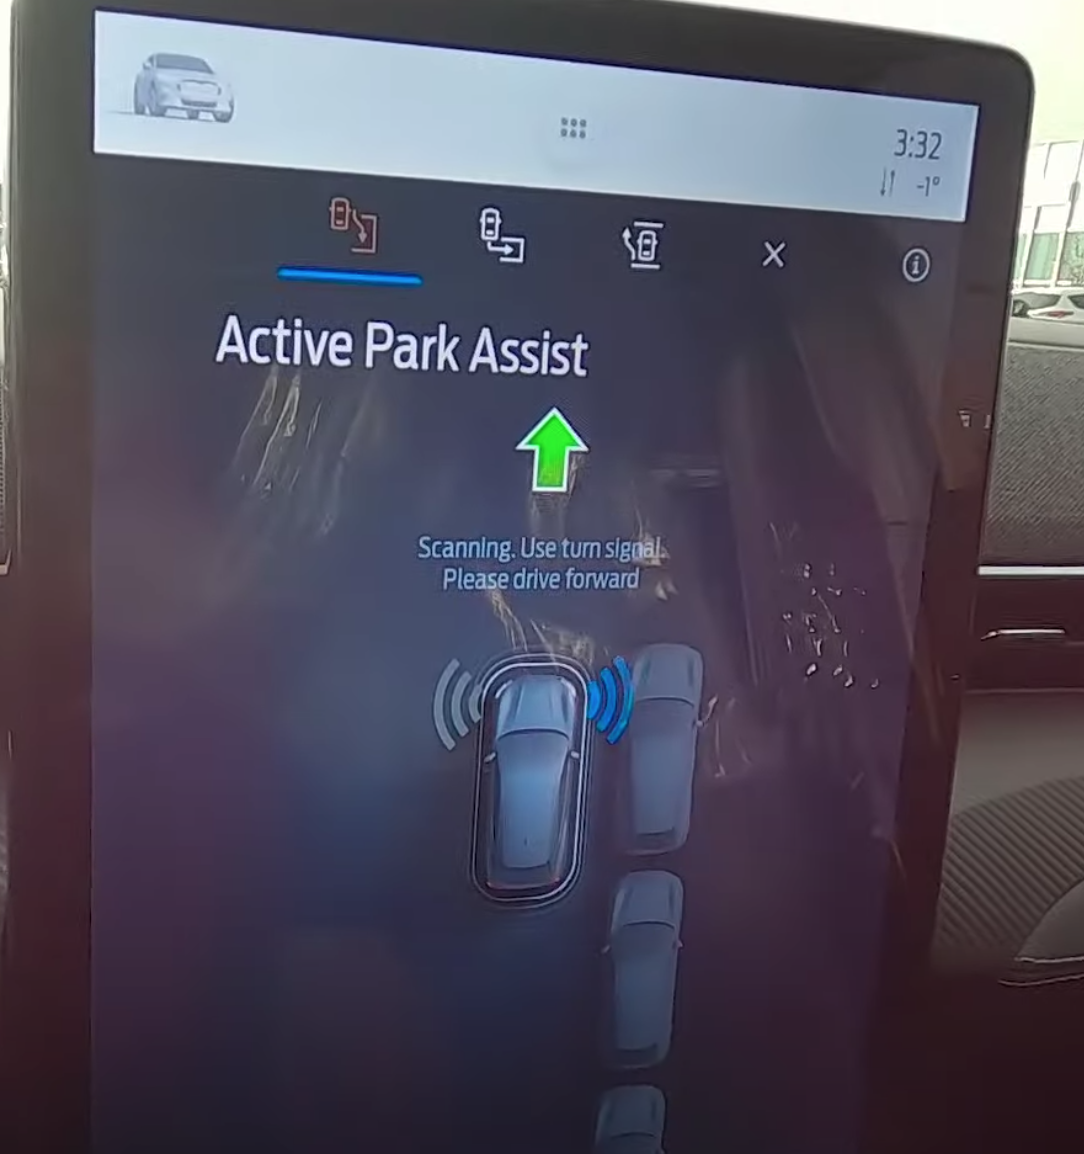 Active park assist page to direct a user from start to finish